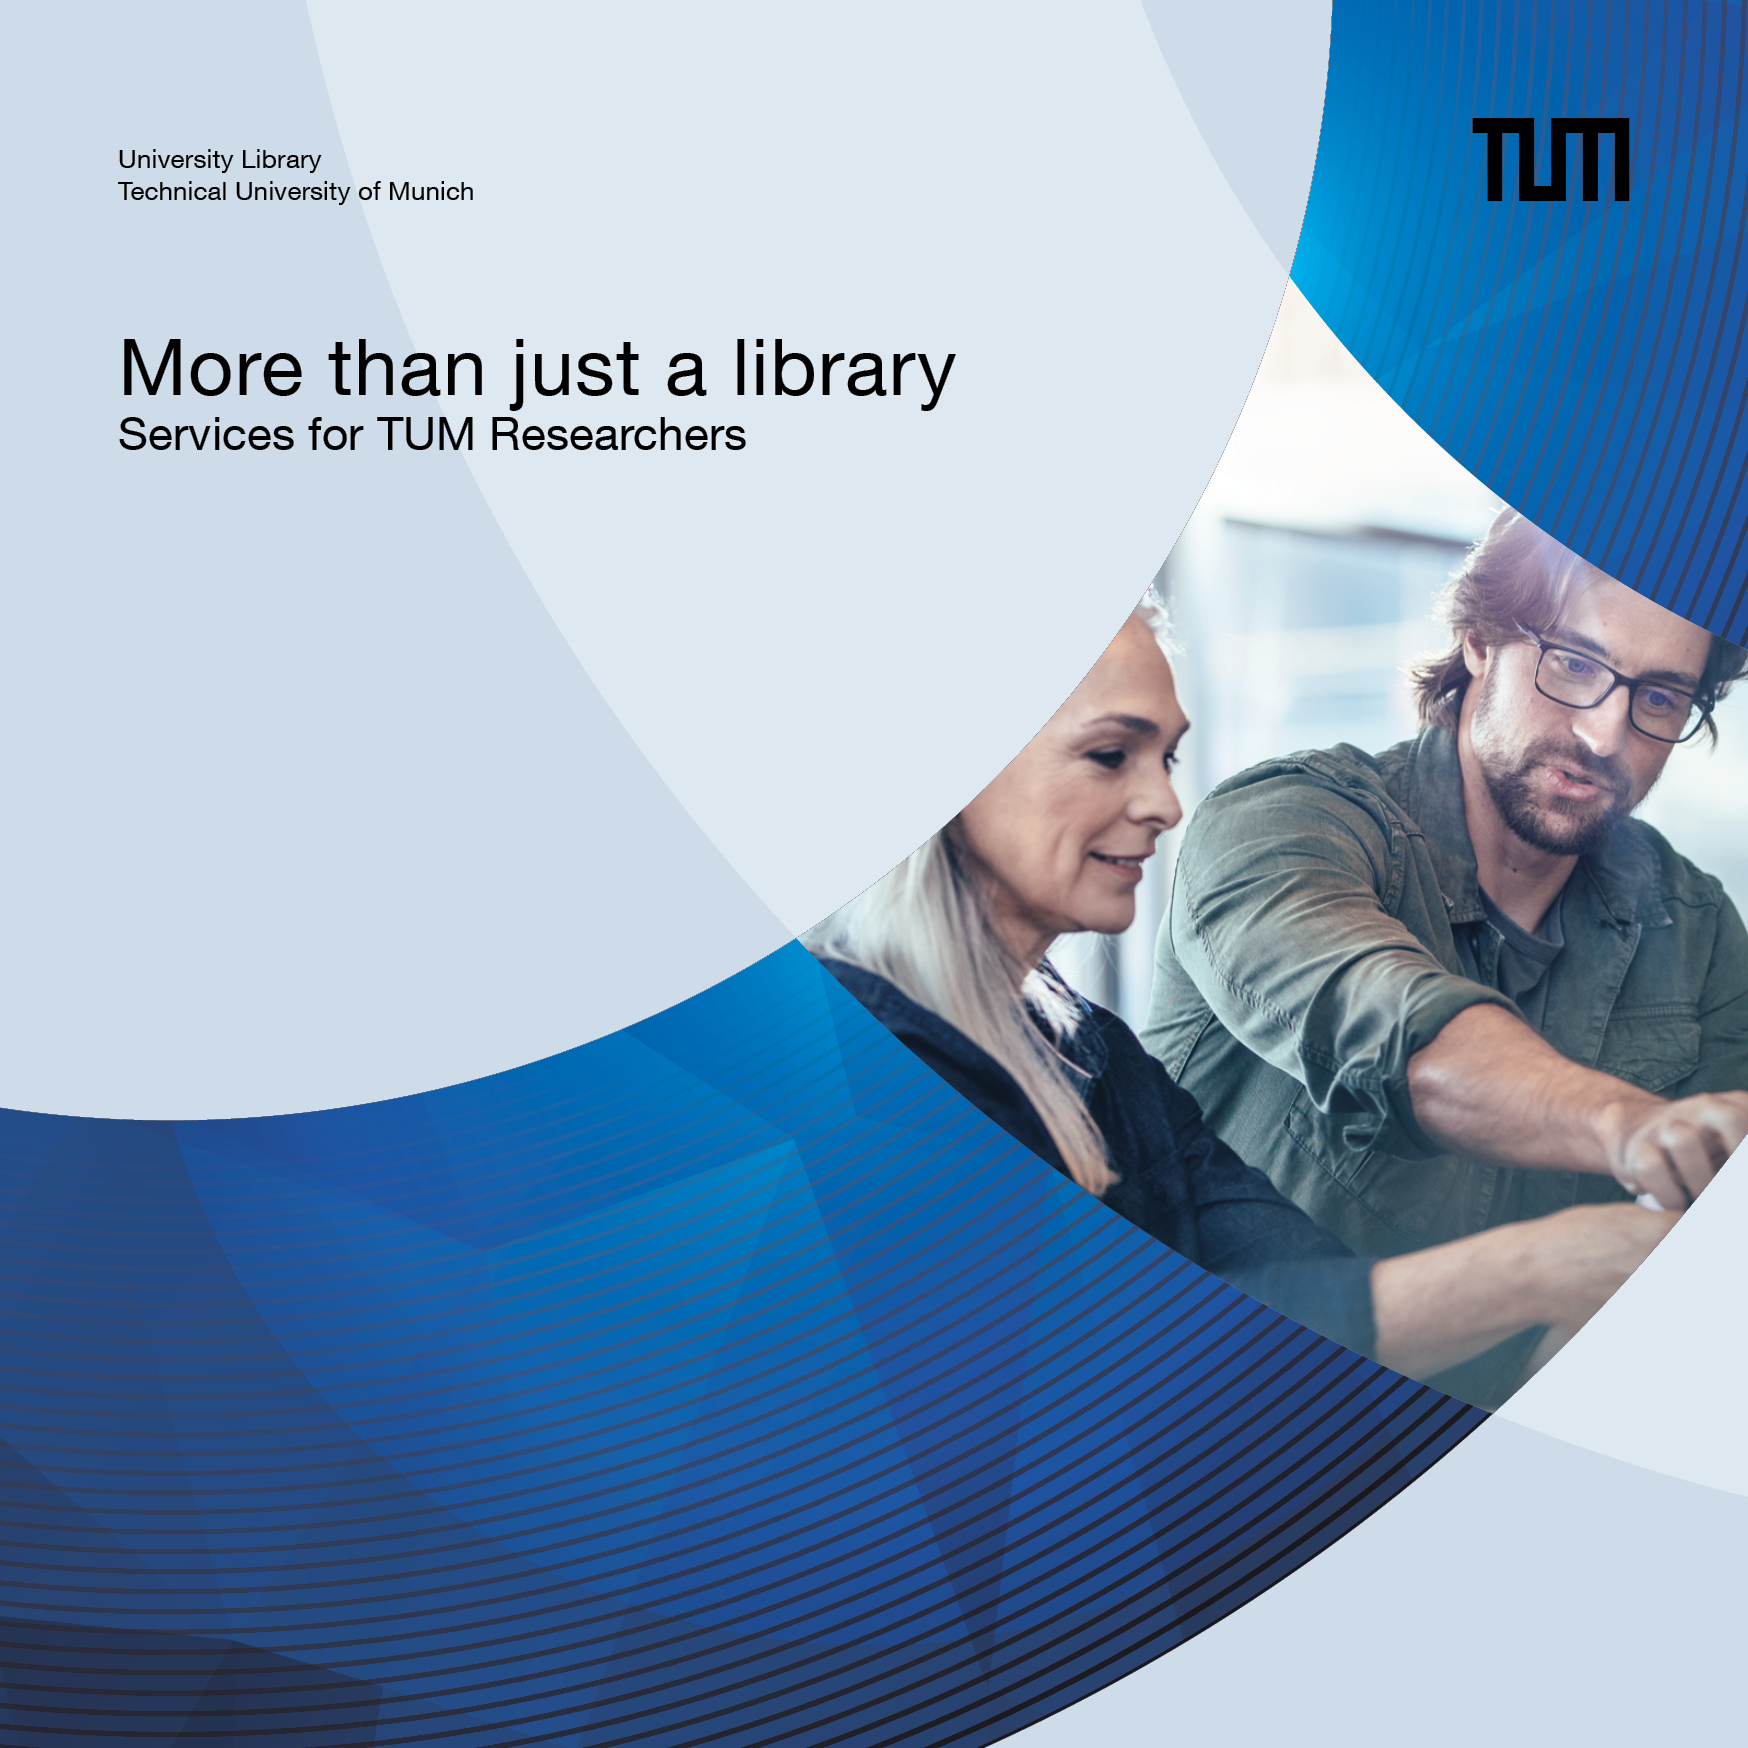 Library brochure: More than just a library – Services for TUM researchers